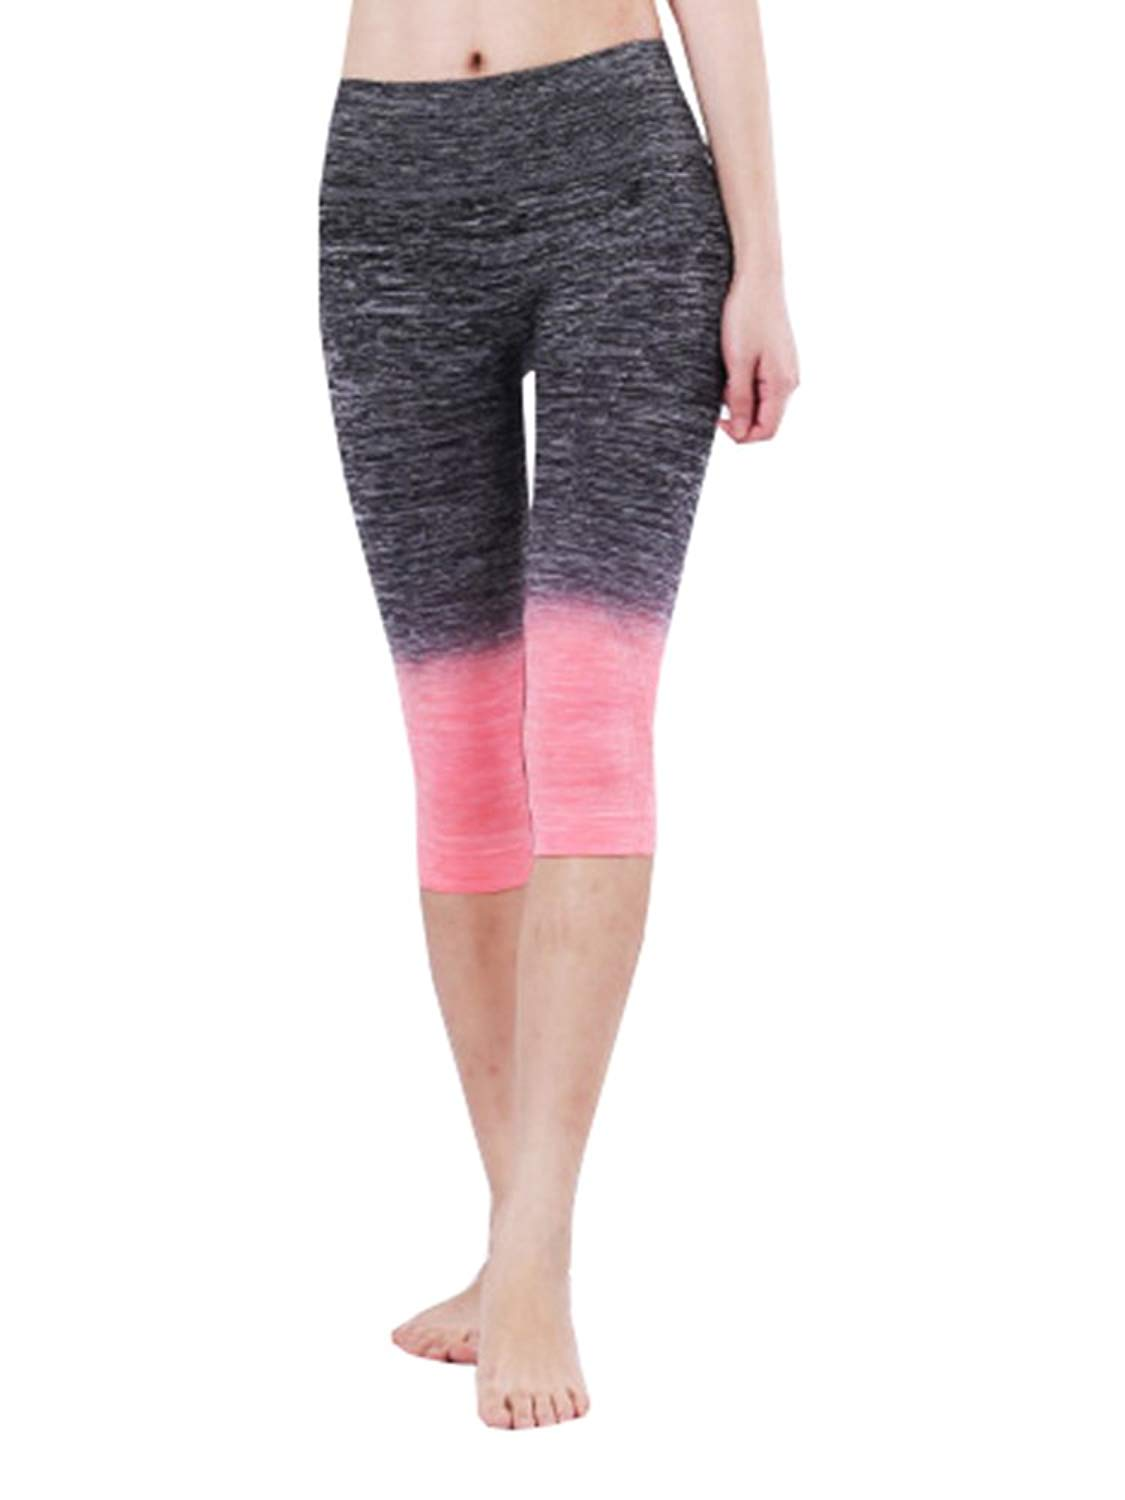 cfab3b81d65e52 Get Quotations · Pxmoda Womens Gradient Fitness Workout Cropped Pants Tummy  Control Leggings Yoga Pants